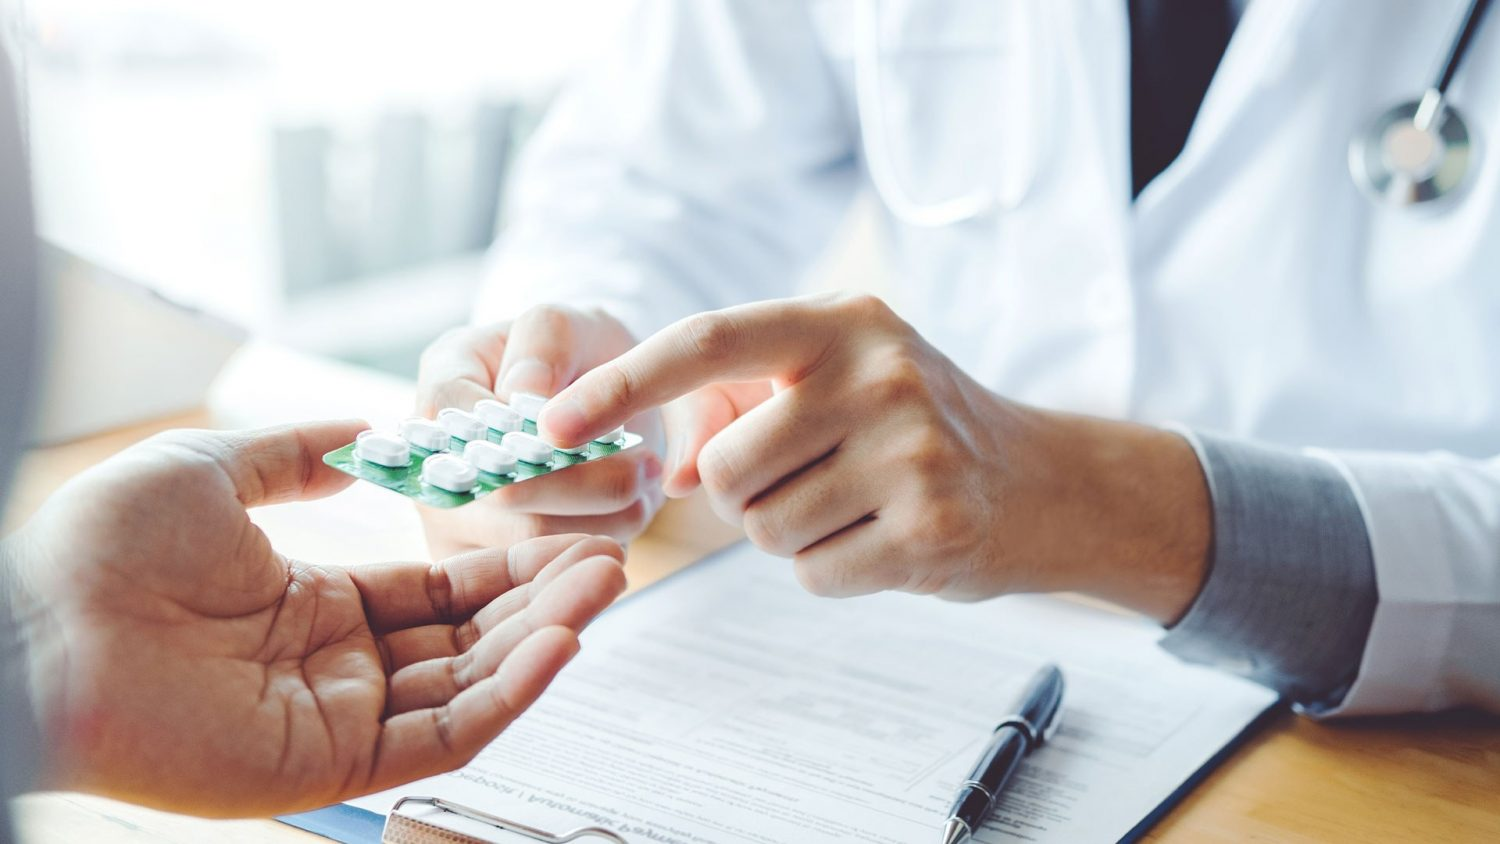 6 Safety Precautions to Take Regarding Your Medication